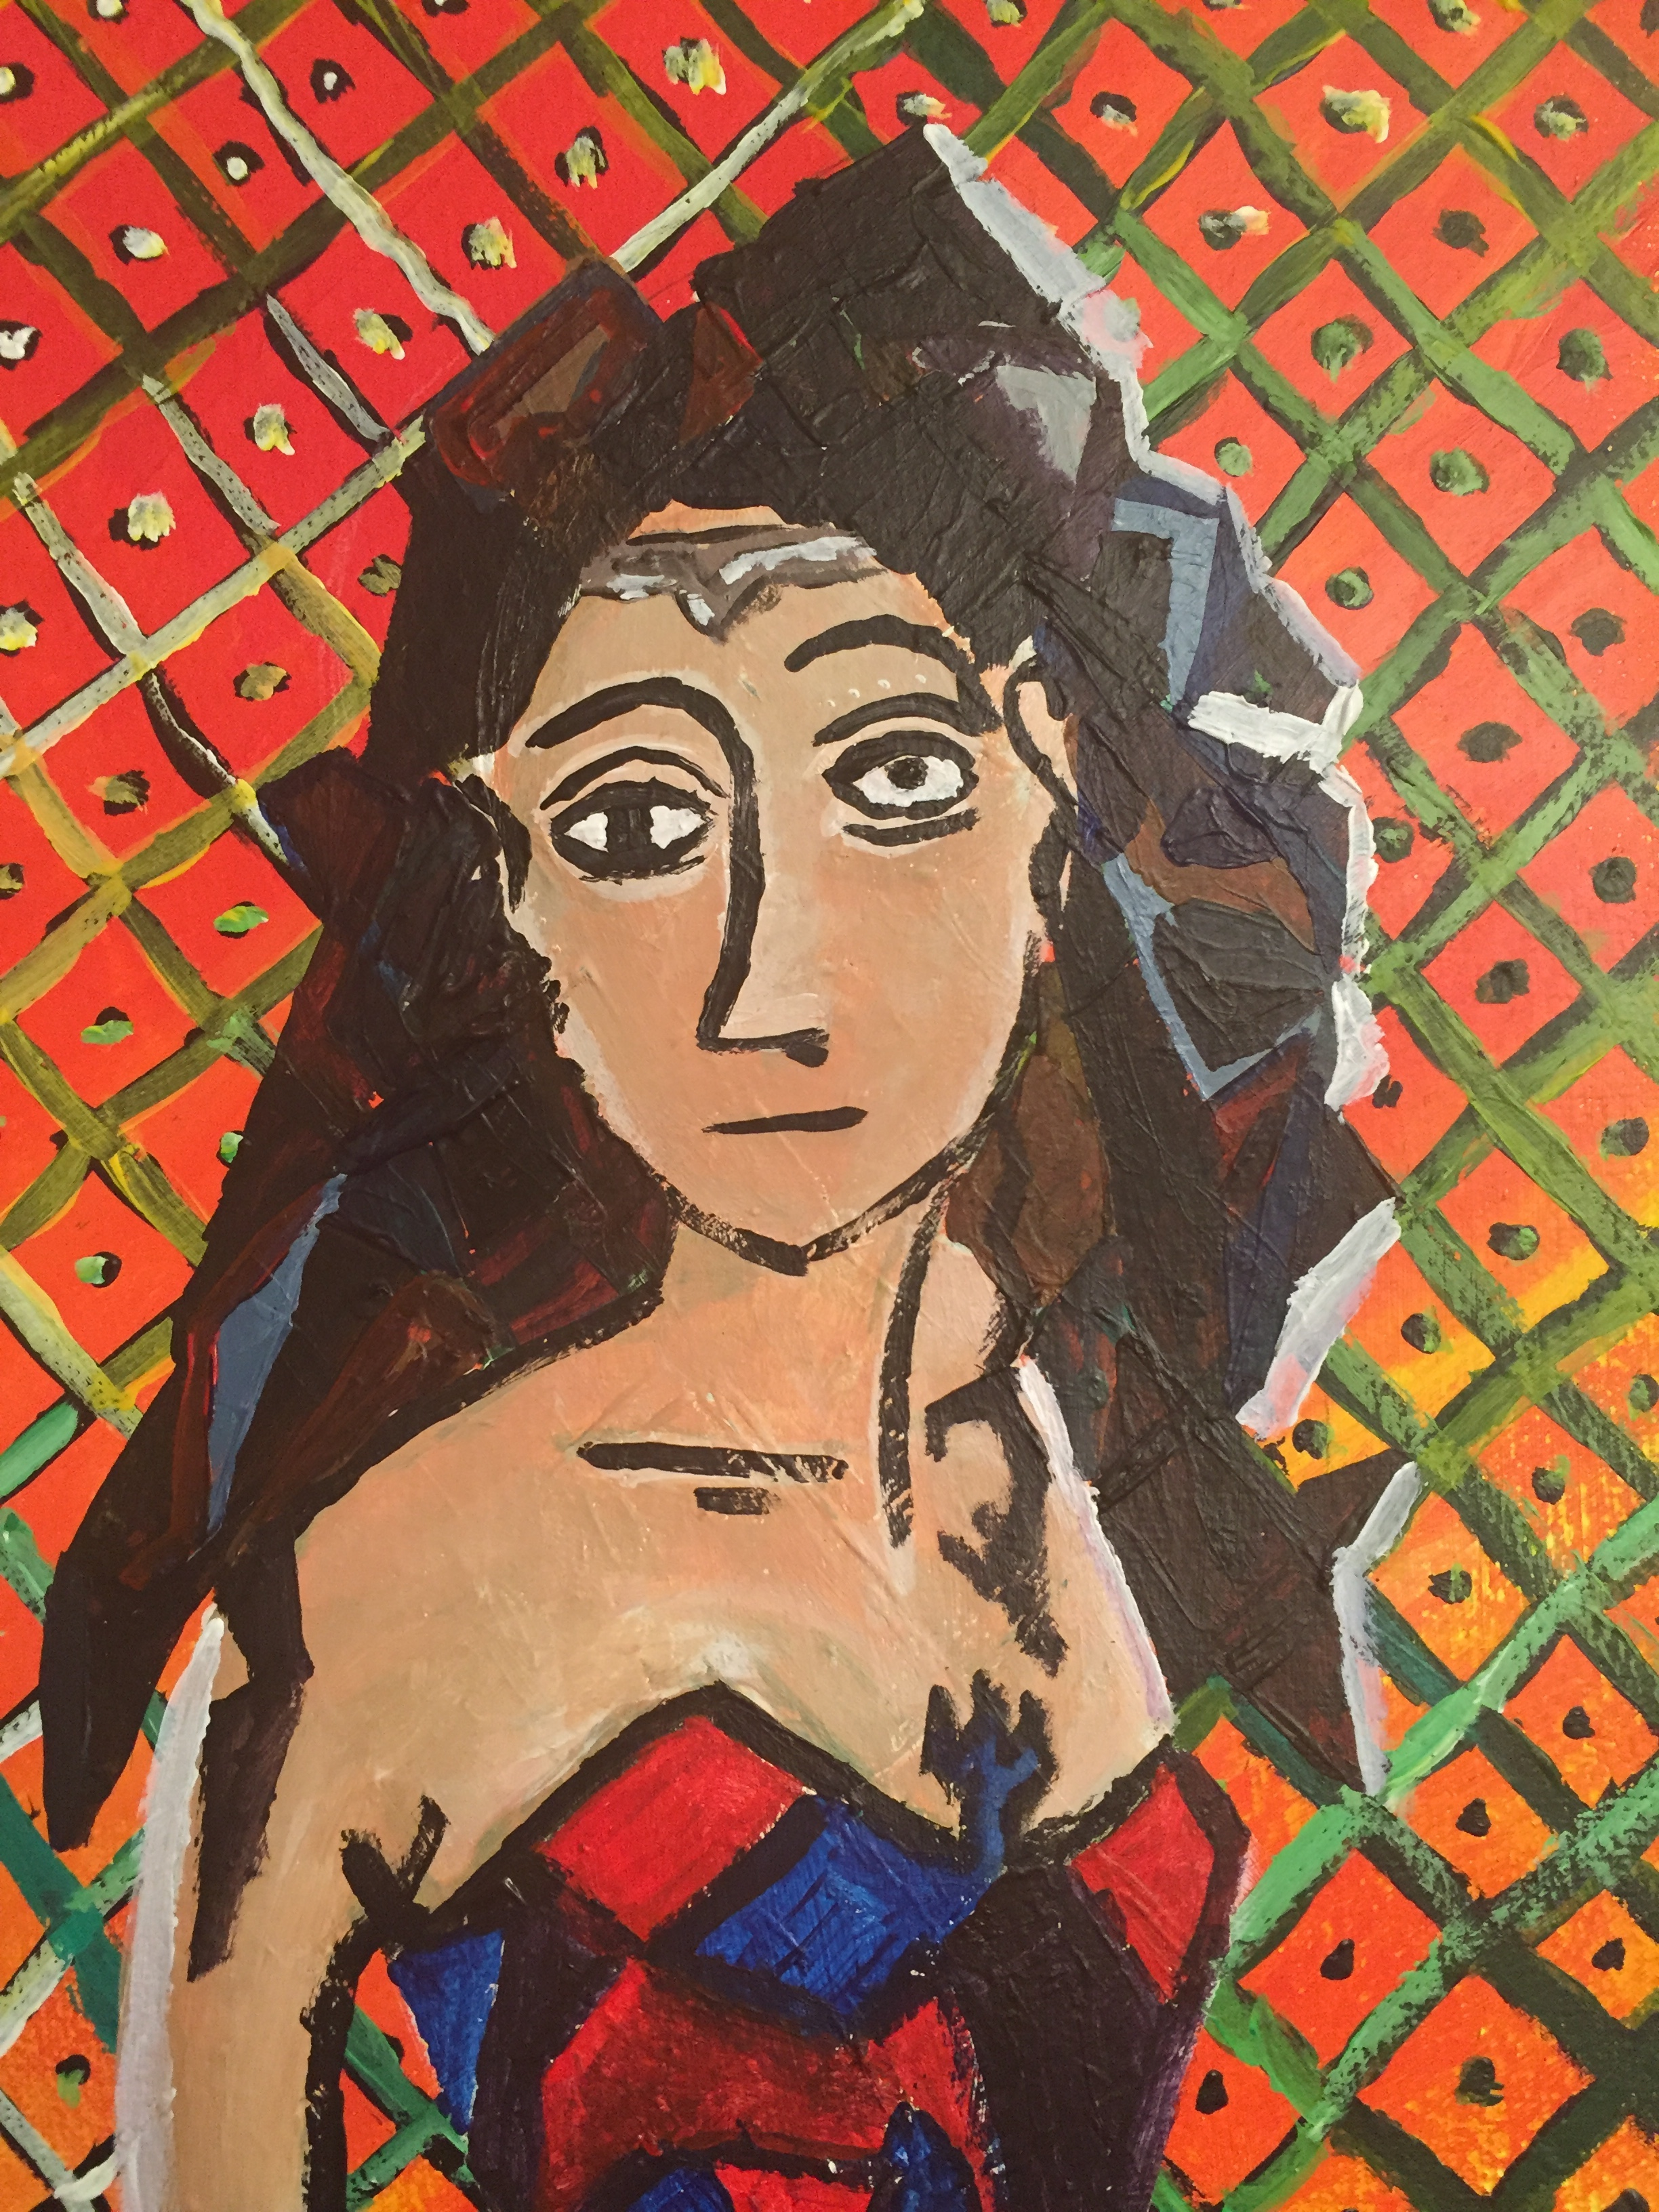 Wonder Woman - Picasso style